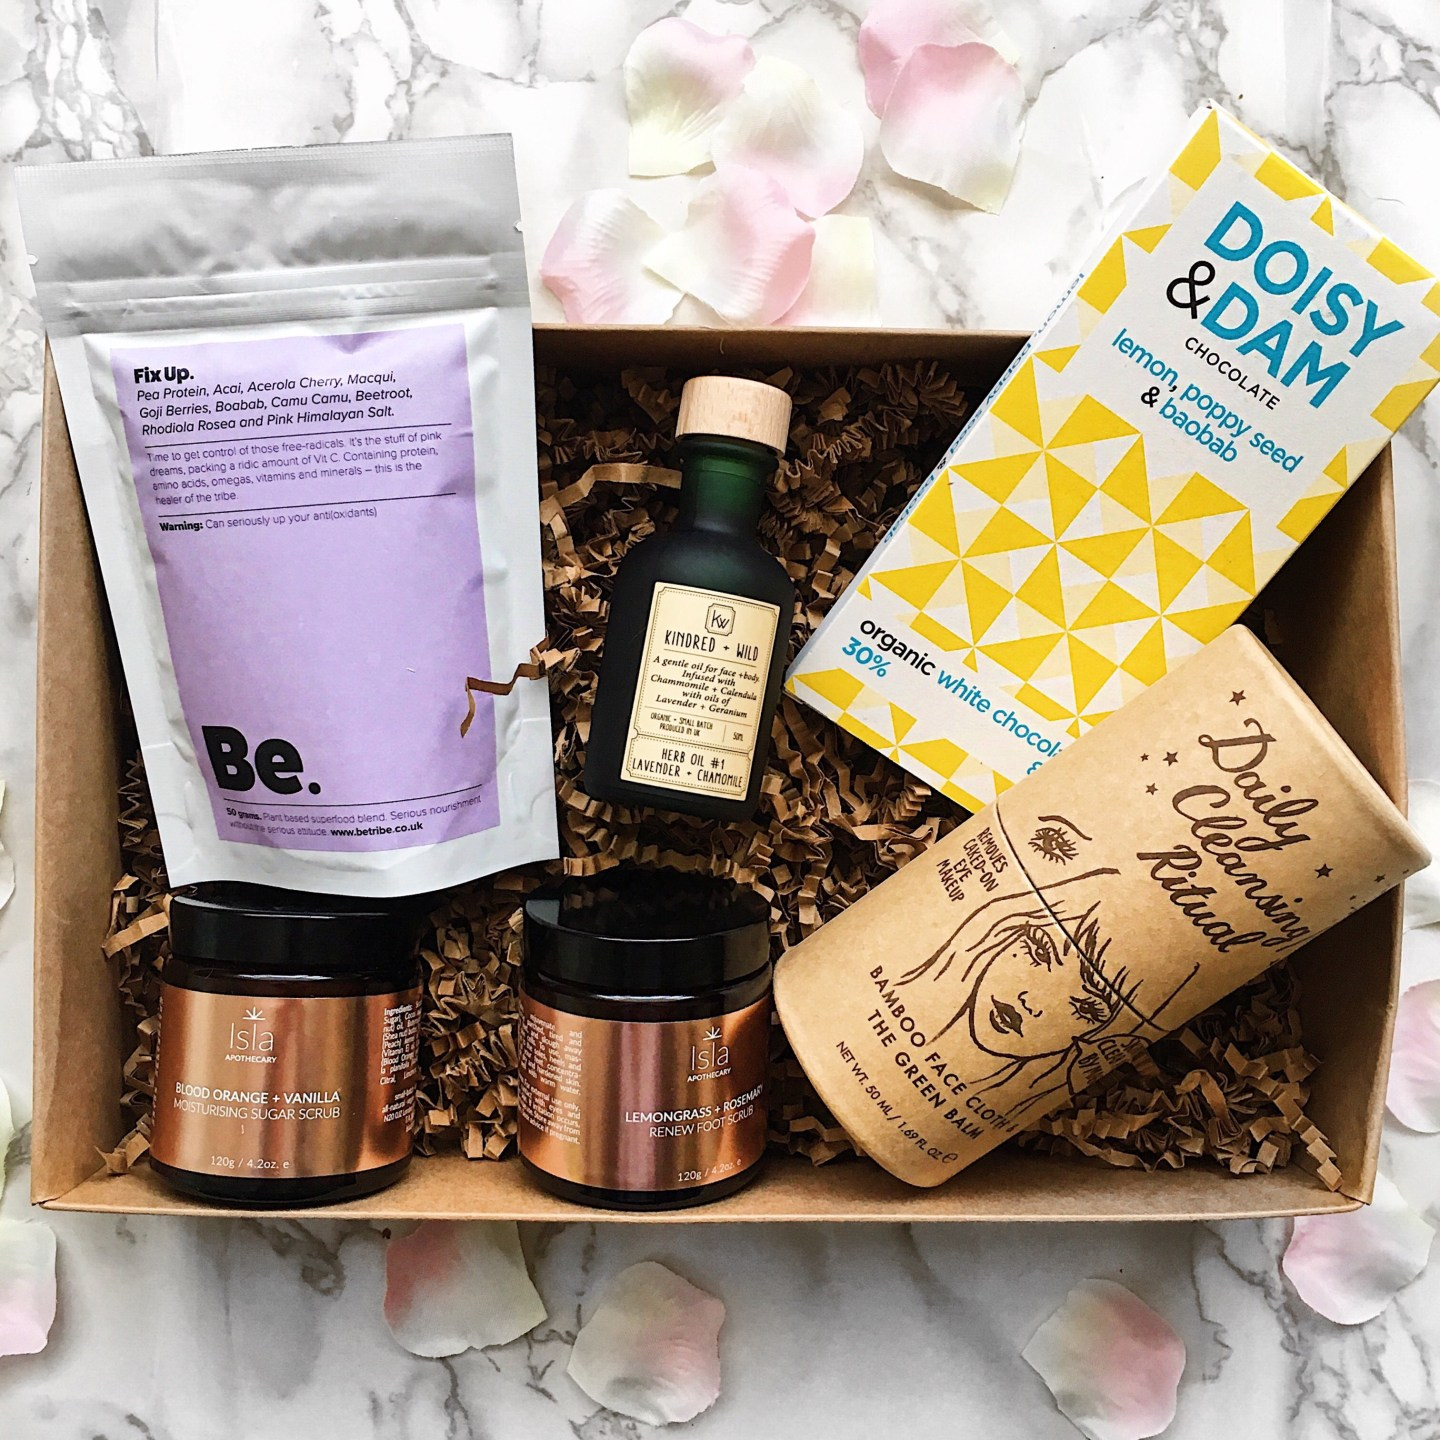 Vertue Subscription Box and Giveaway!